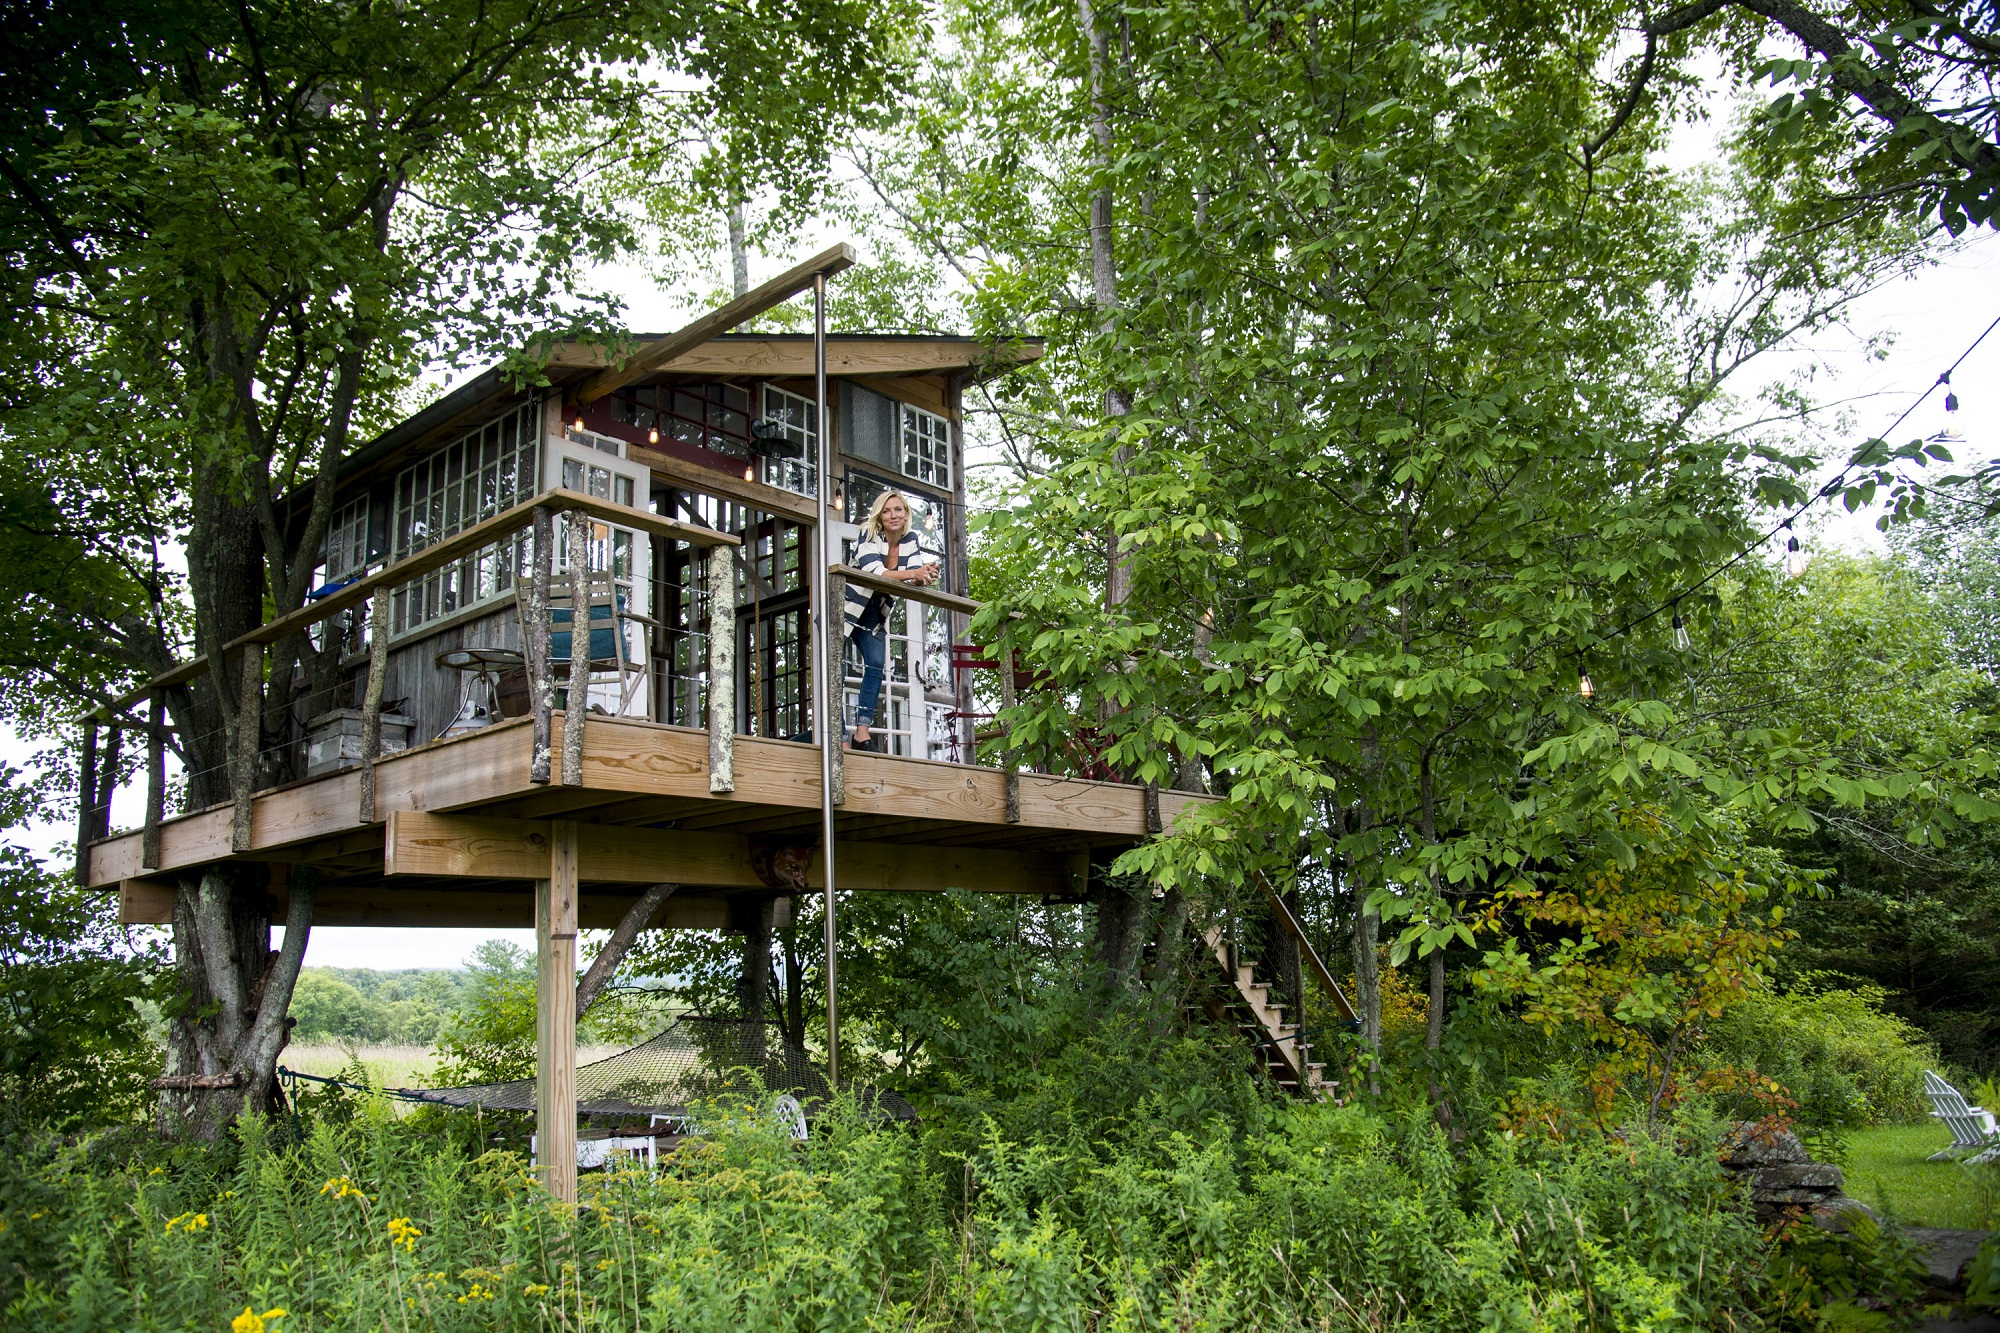 These Grown Ups Spent Thousands On Tricked Out Treehouses